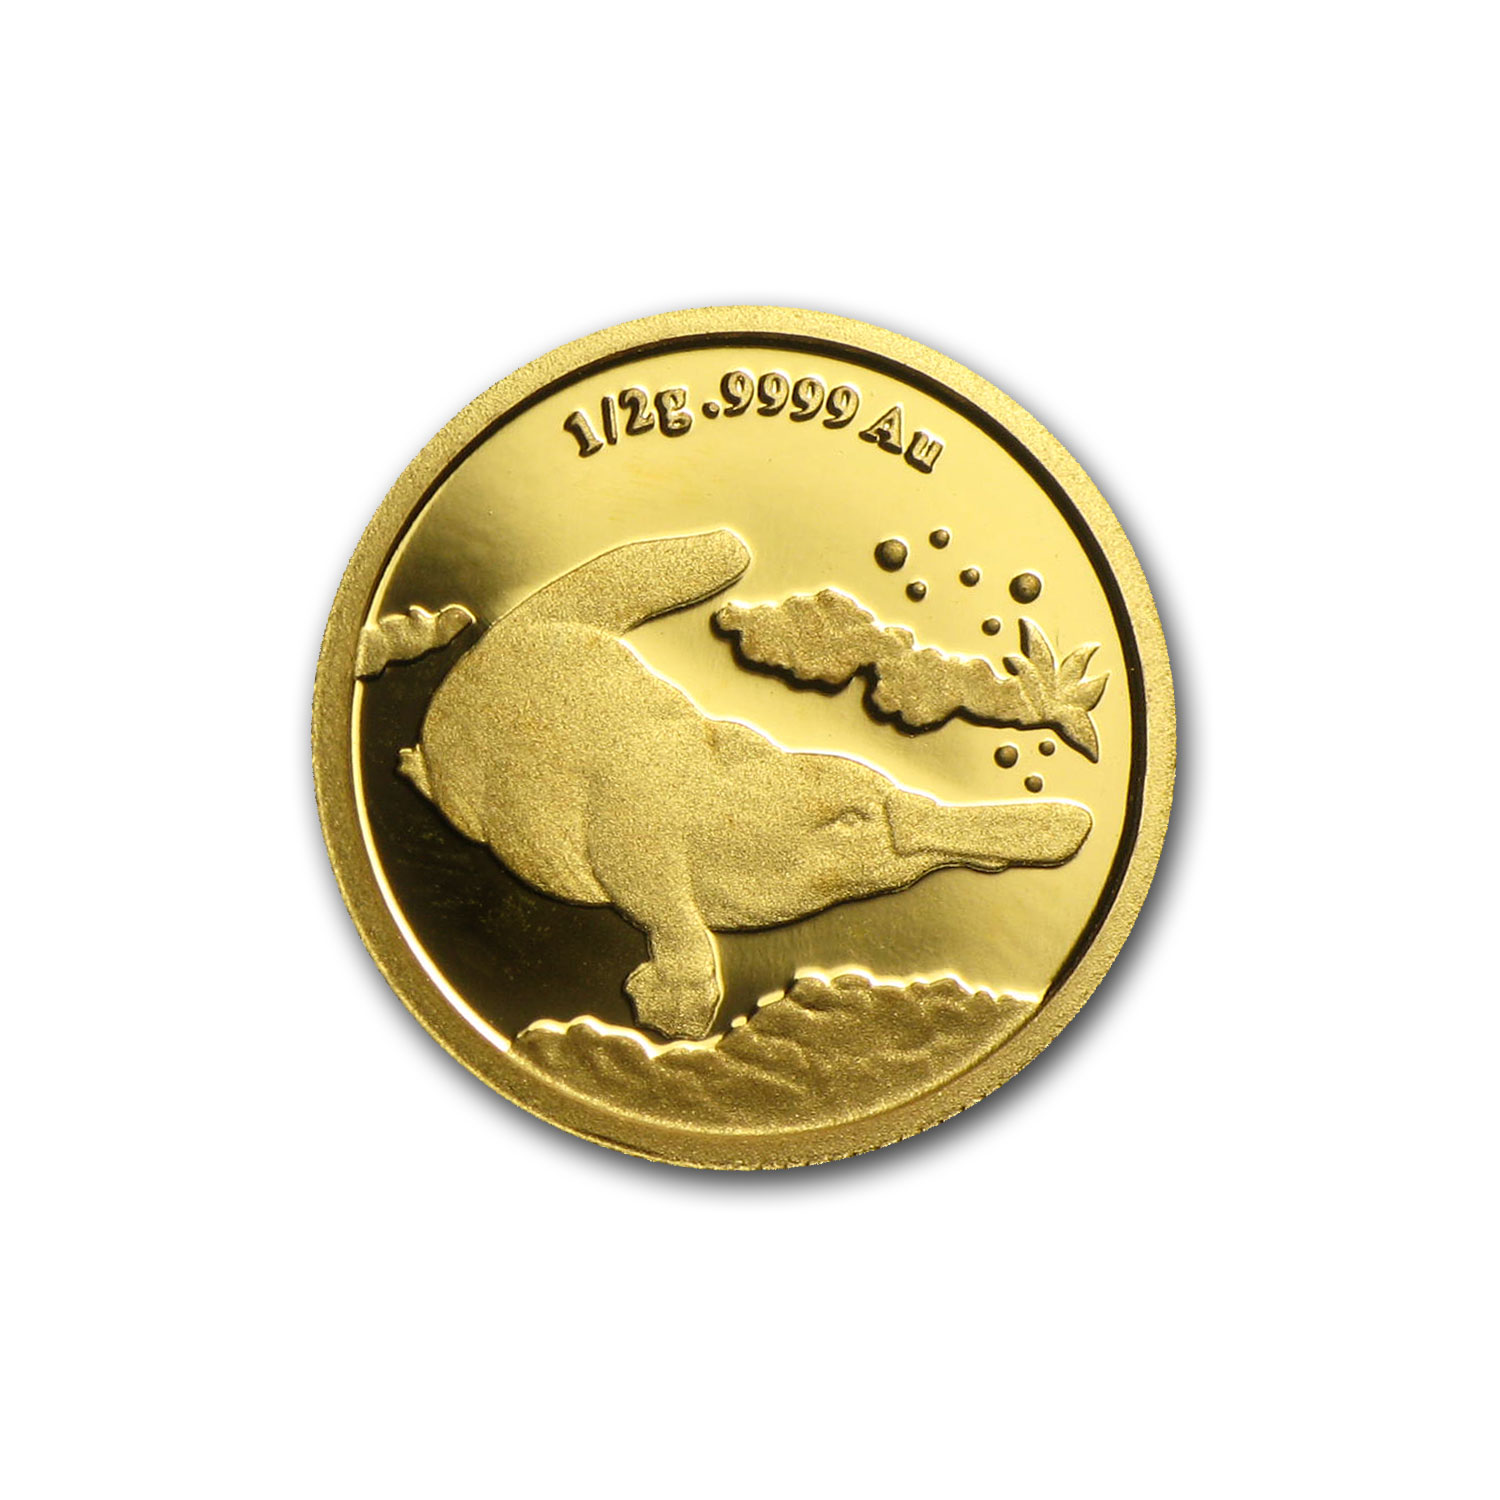 2014 1/2 gram Gold Royal Australian Mint $2 Platypus Proof